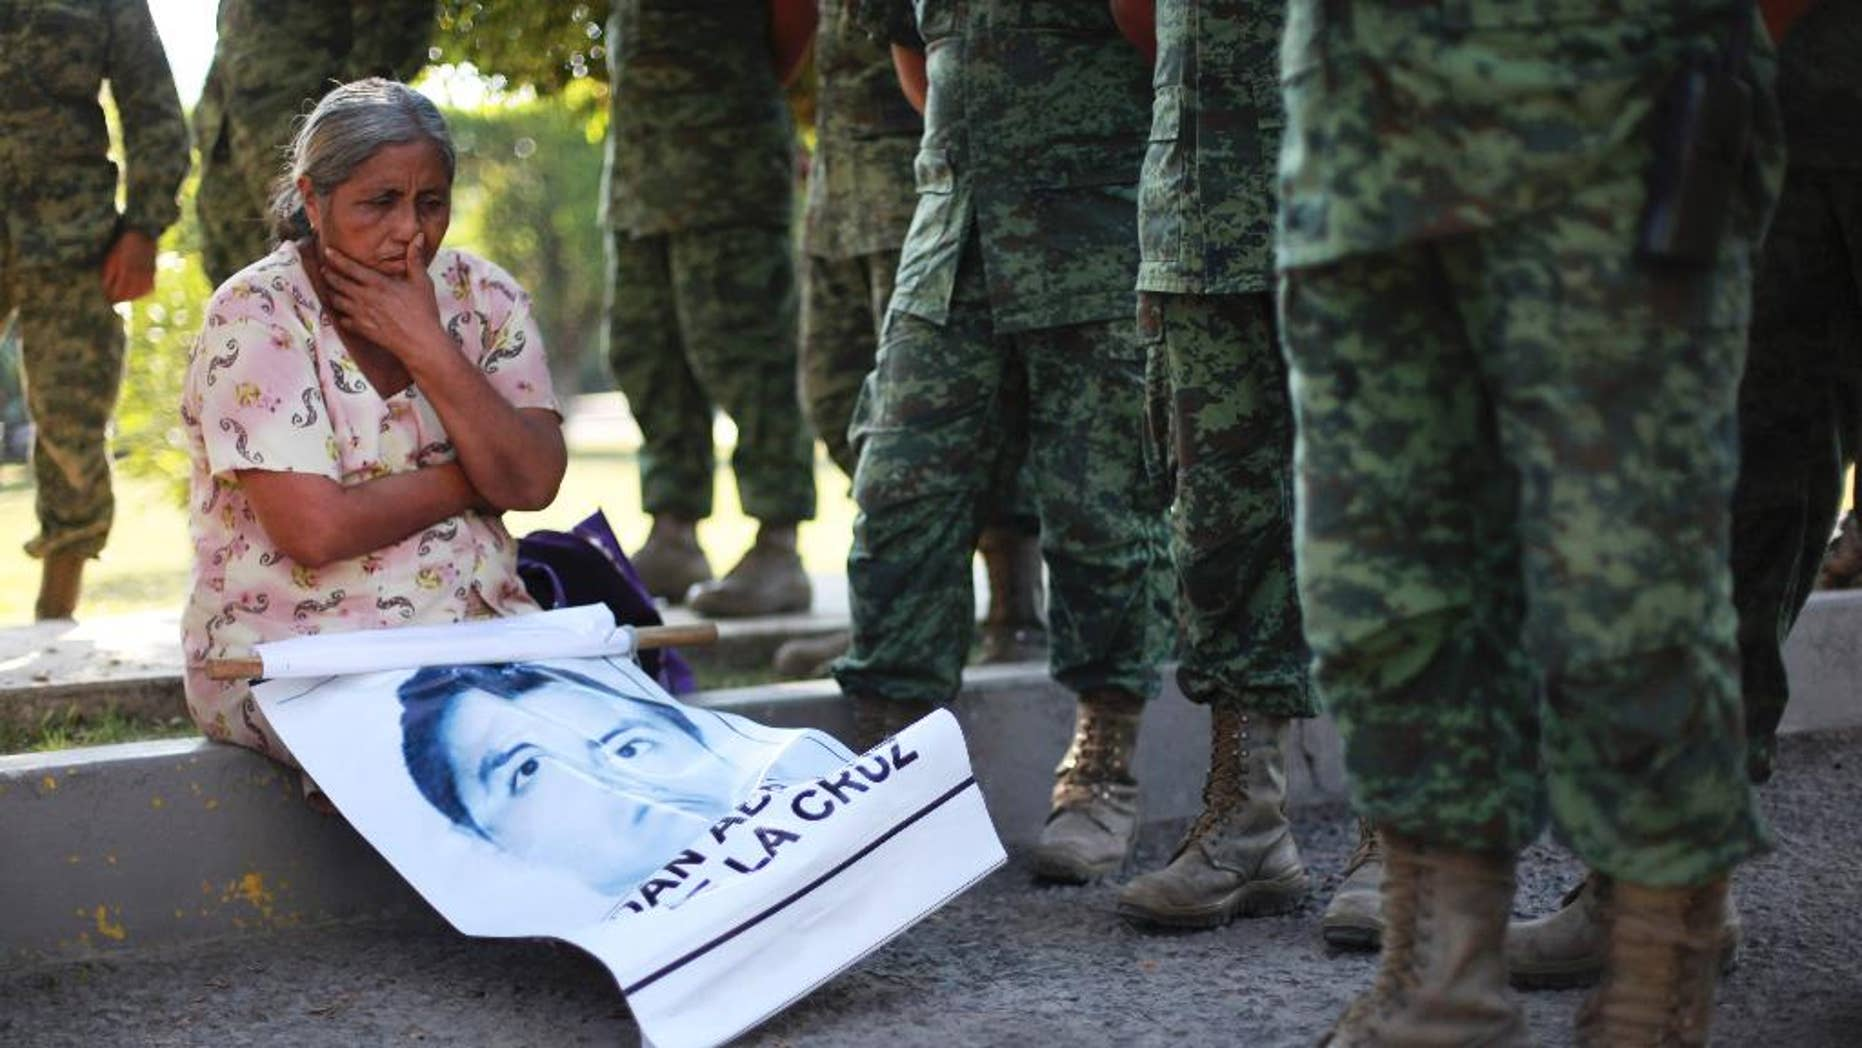 FILE - In this Dec. 18, 2014 file photo, the mother of missing college student Adan Abarajan de la Cruz sits at the foot of soldiers outside a military base during a protest by the families of 43 missing students over the army's alleged responsibility or lack of response to the students' disappearance in Iguala, Mexico. A group of independent experts said Monday, Aug. 17 2015, that Mexican authorities withheld information from family members of 43 college students who disappeared after a confrontation with police, not notifying them that some of the young men's clothing was discovered shortly after they went missing. (AP Photo/Felix Marquez, File)